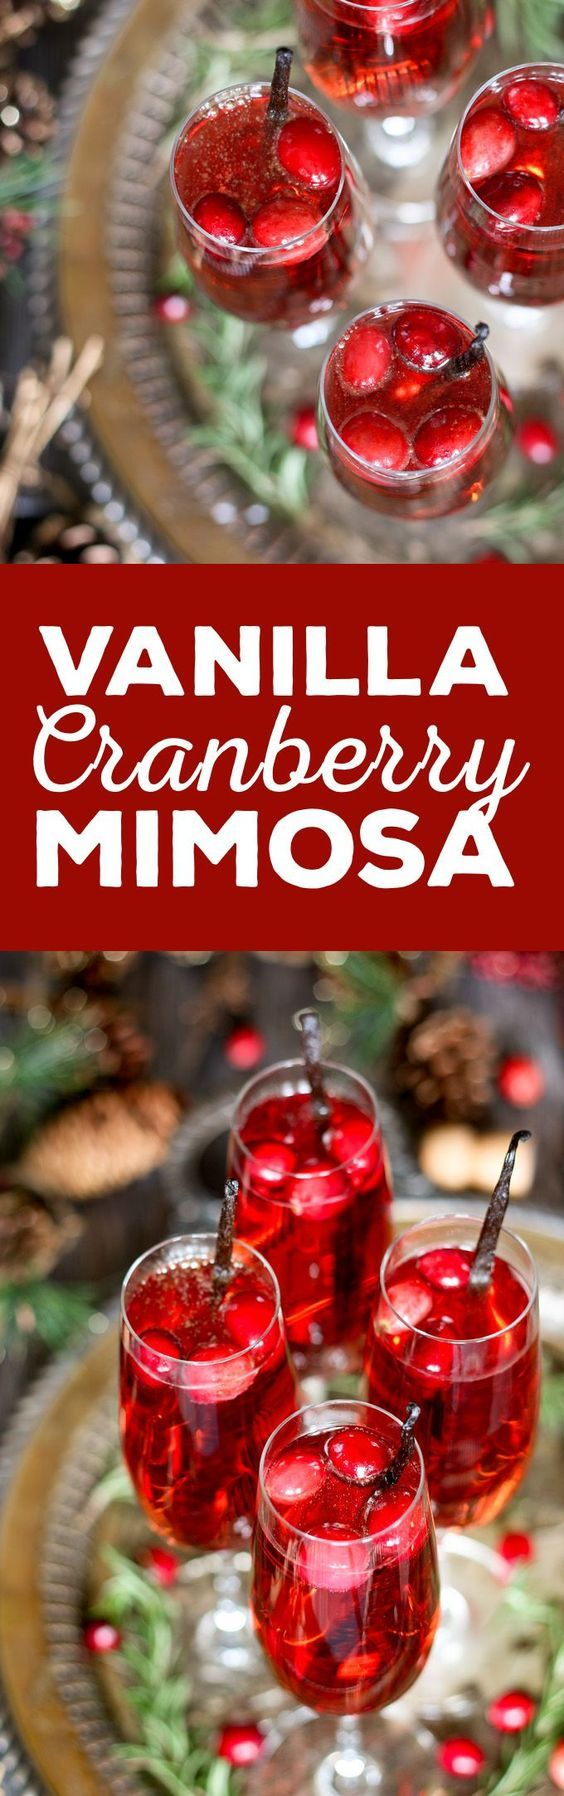 This vanilla cranberry mimosa cocktail is perfect for winter brunches, Christmas, and holiday and New Year's Eve parties! This drink recipe only requires 3 ingredients and is very easy to make.   honeyandbirch.com